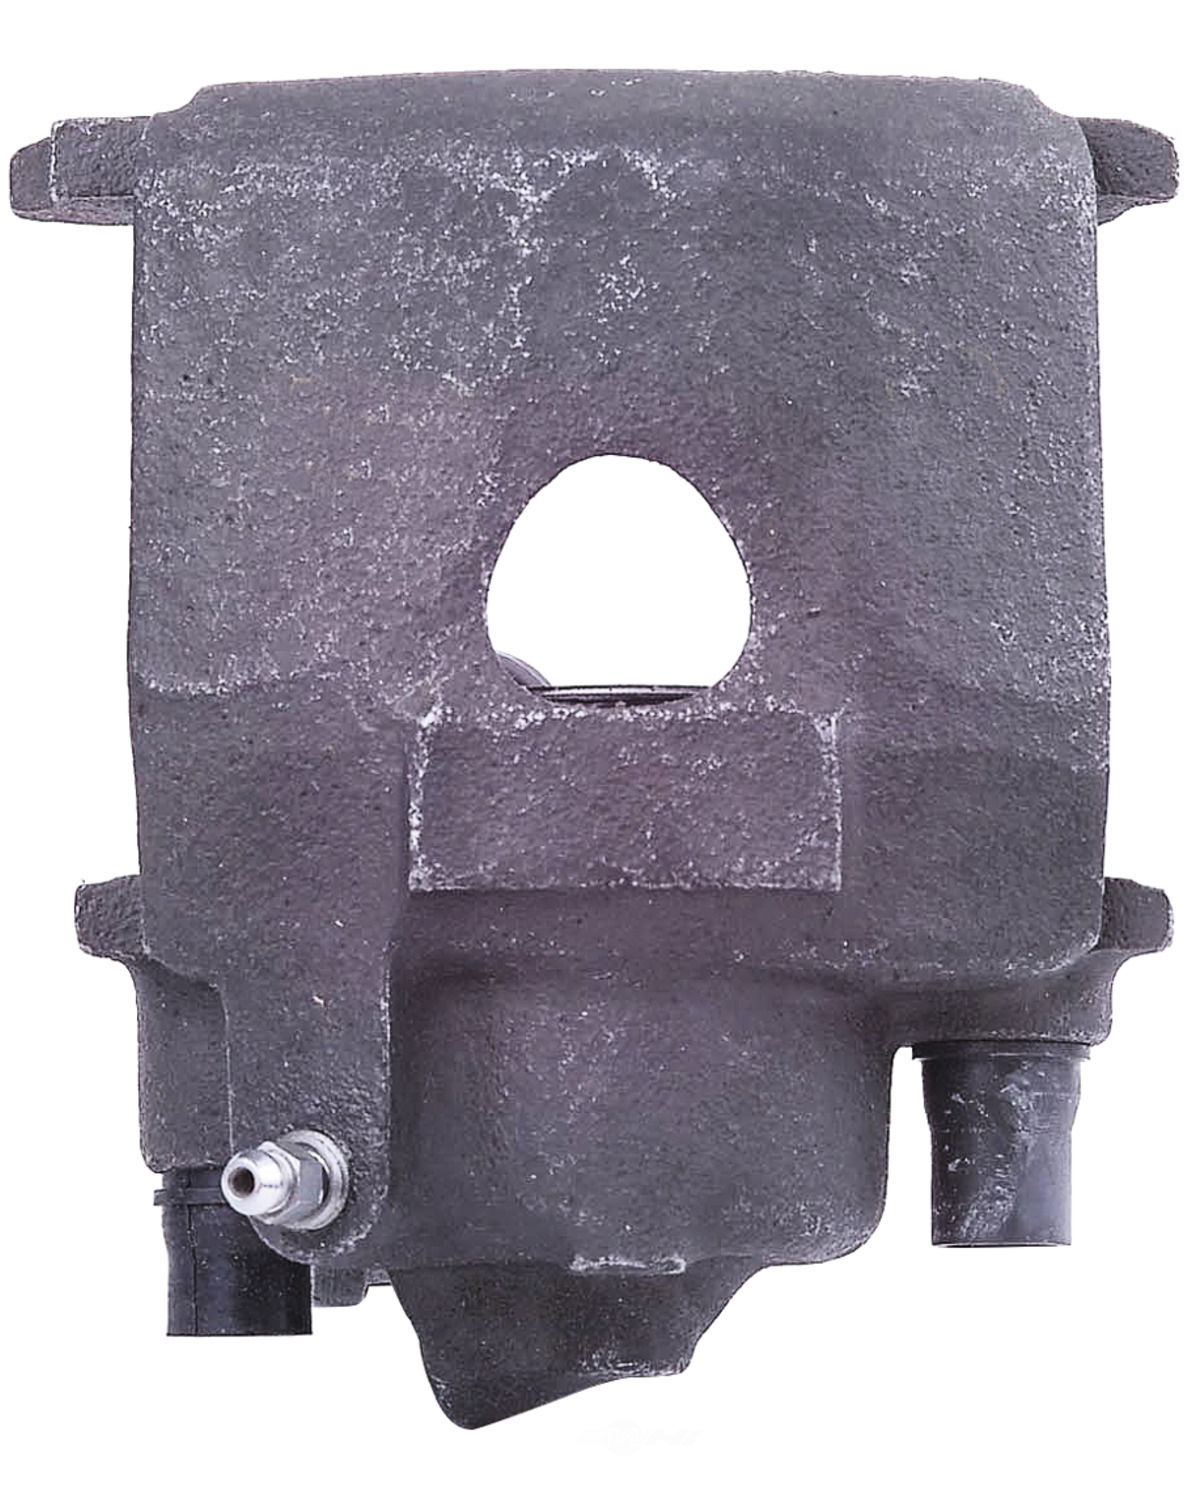 CARDONE/A-1 CARDONE - Remanufactured Friction Choice Caliper (Front Left) - A1C 19-151